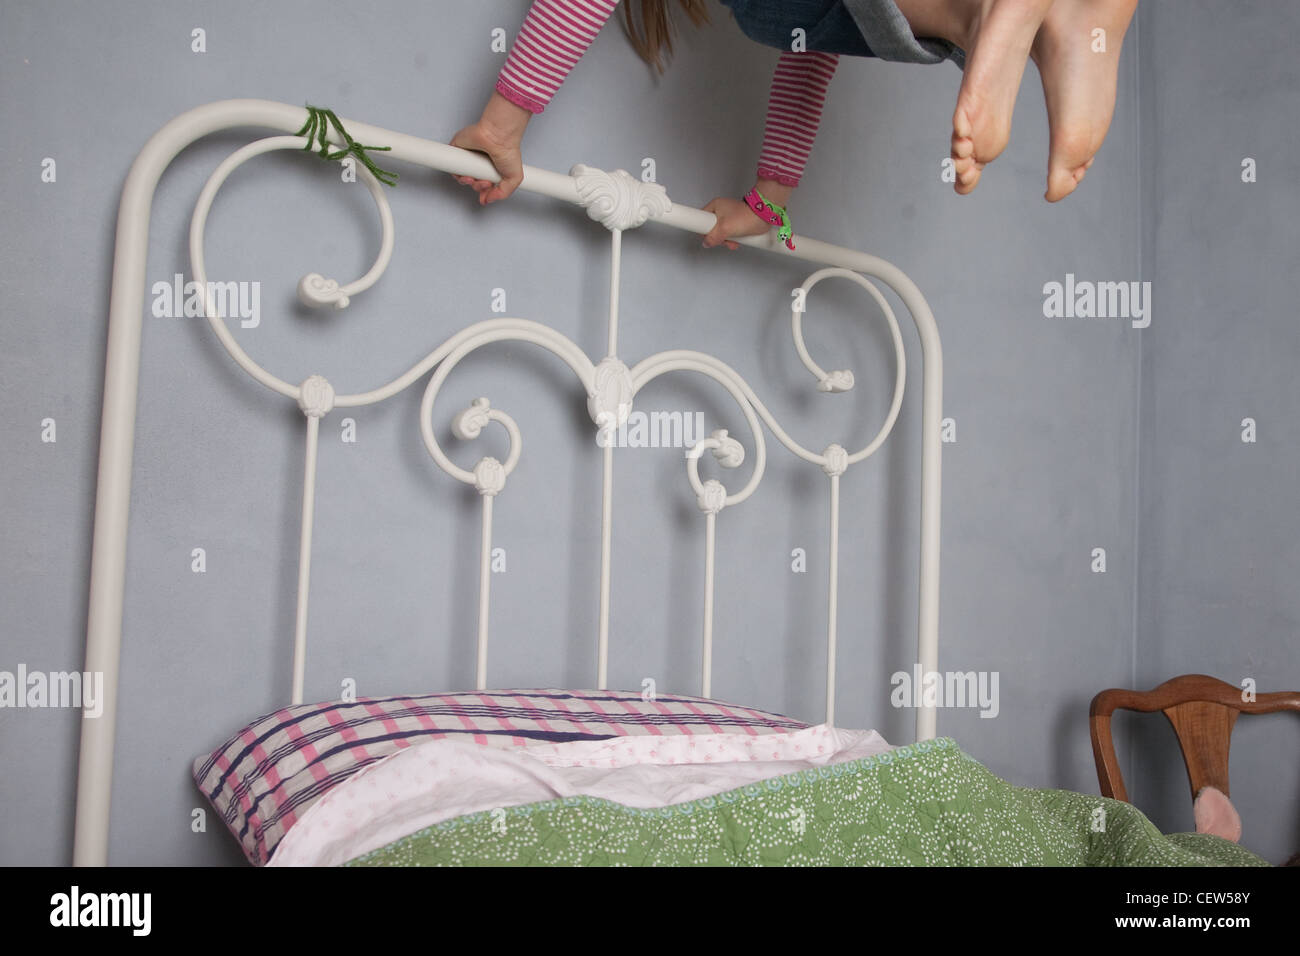 Child jumping on bed, showing only hands holding on and tips of toes, at home in bedroom. - Stock Image